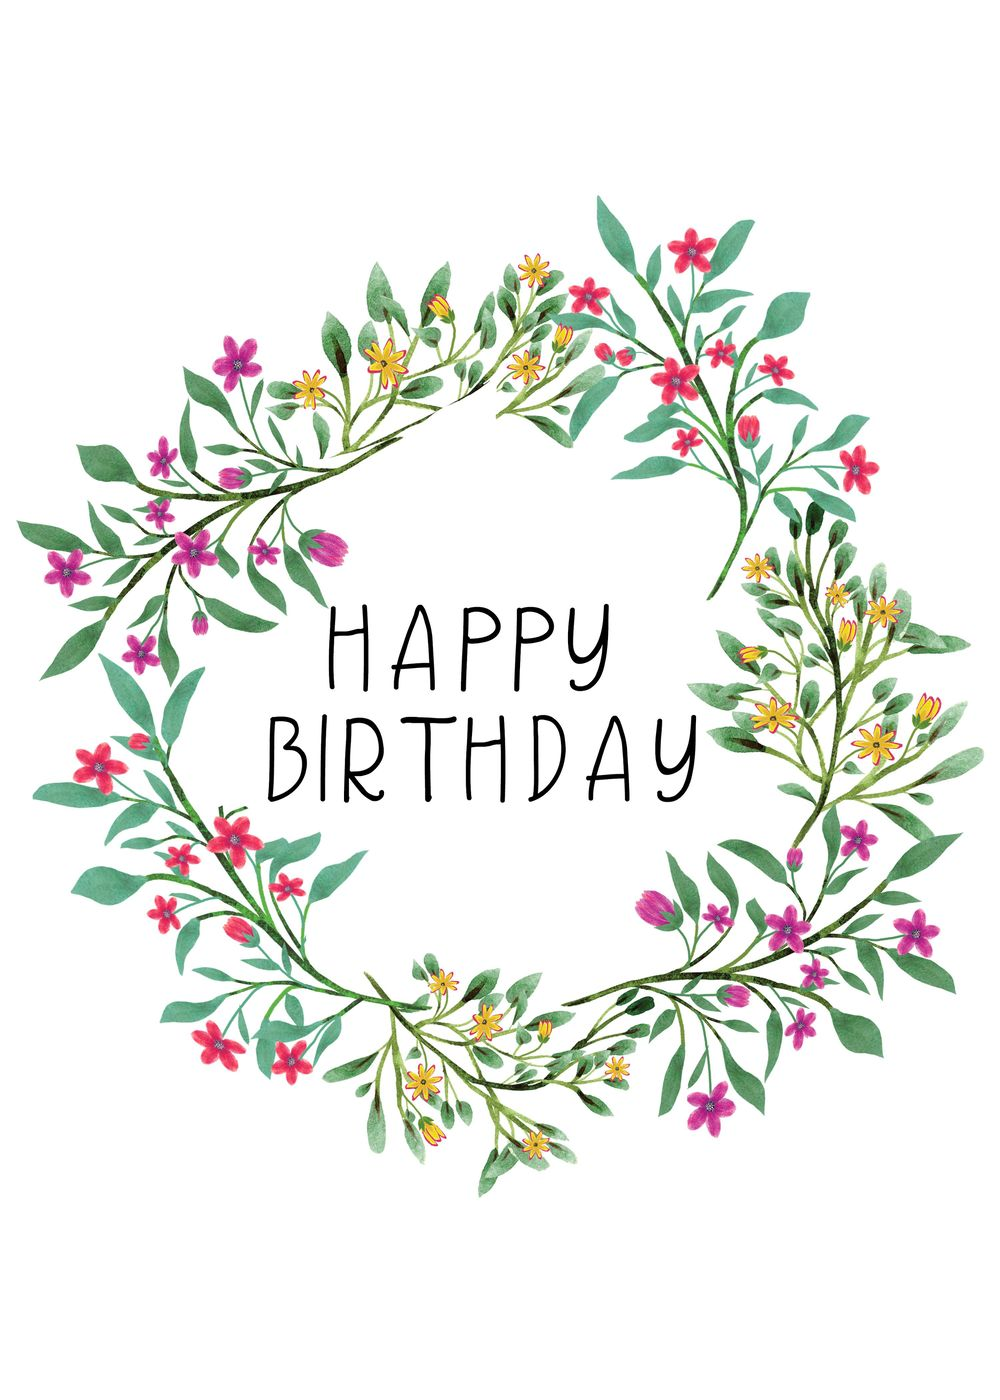 Birthday card - image 1 - student project